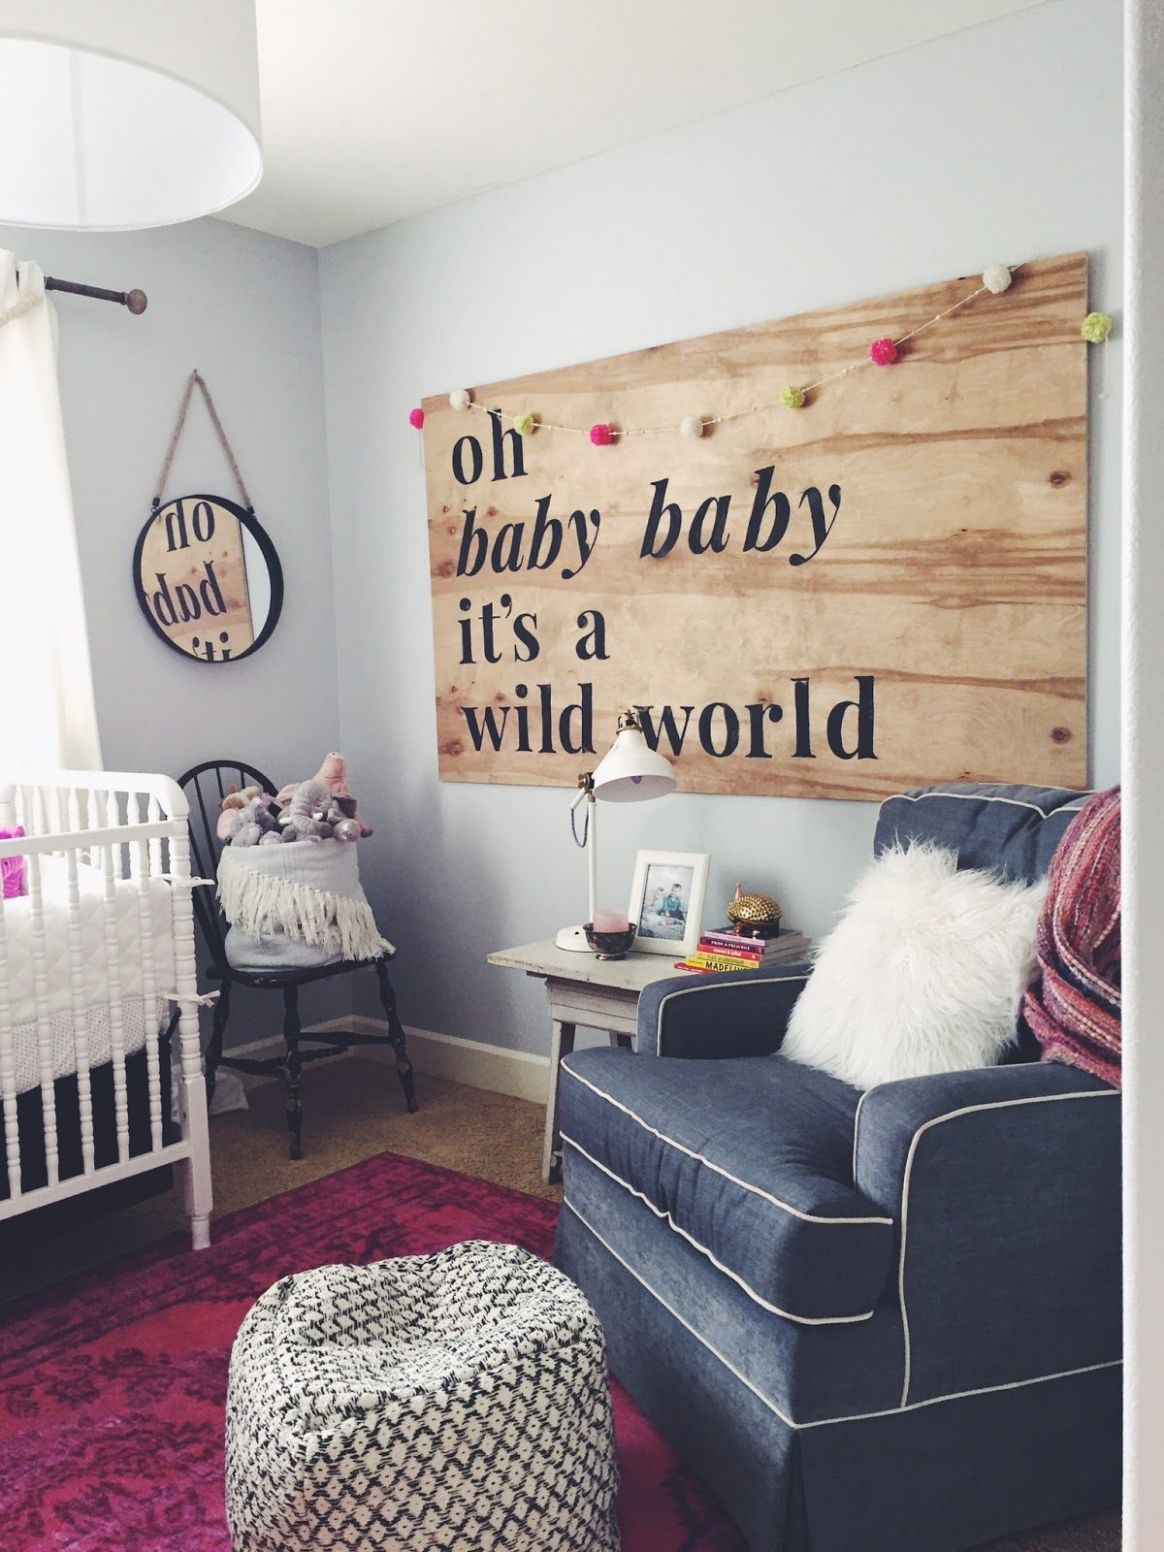 Winnie's Nursery | Baby room decor